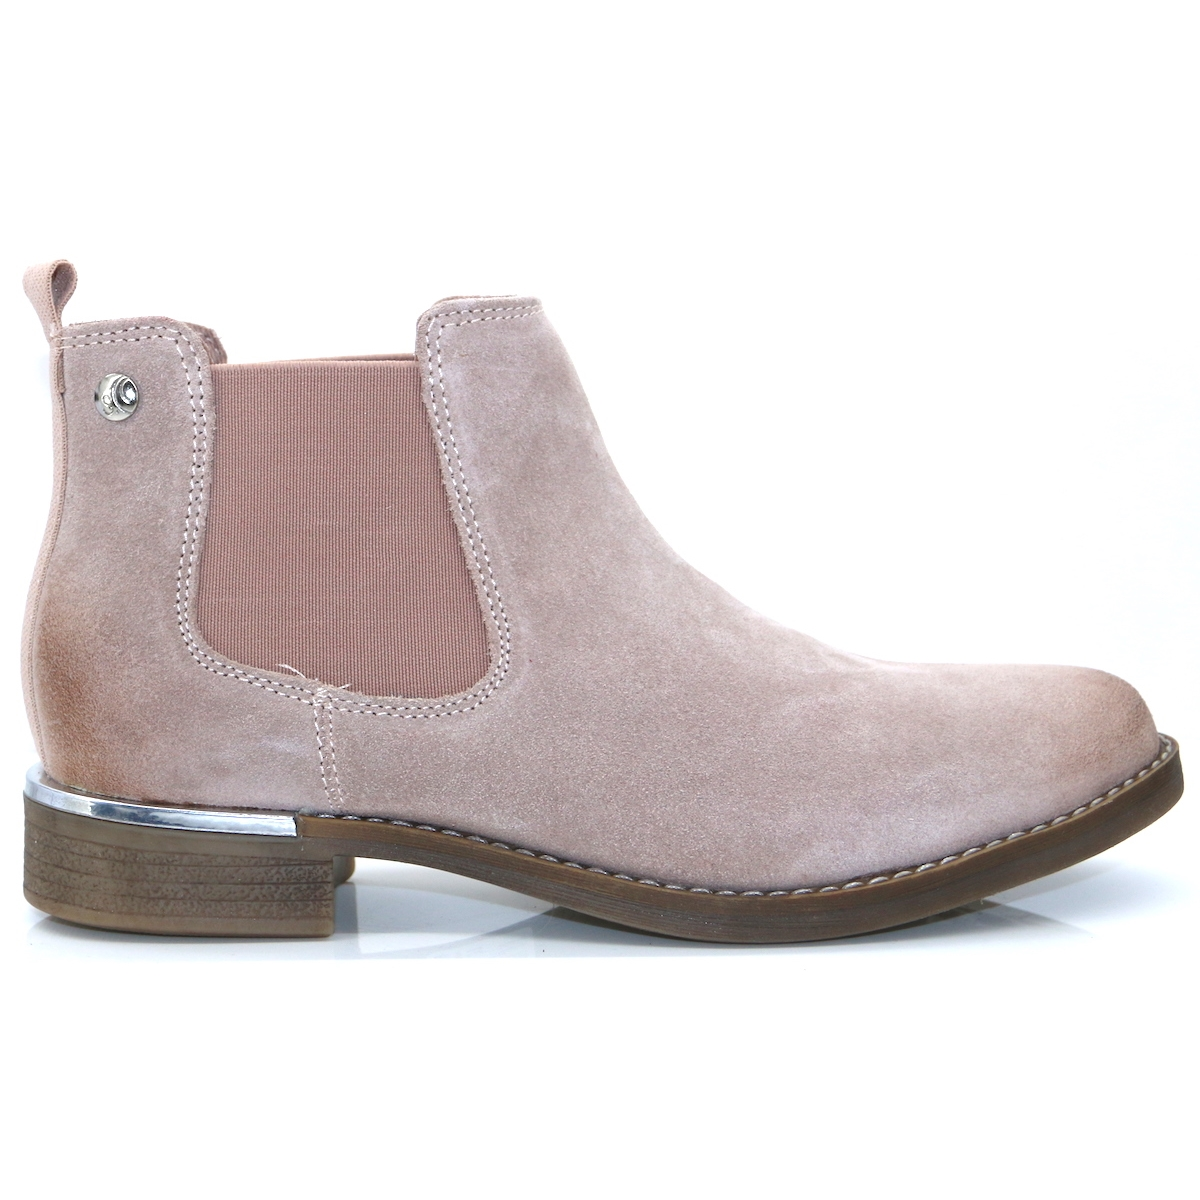 buy popular 6ad02 0bcdc 25345-33 - S.OLIVER PALE PINK CHELSEA BOOTS